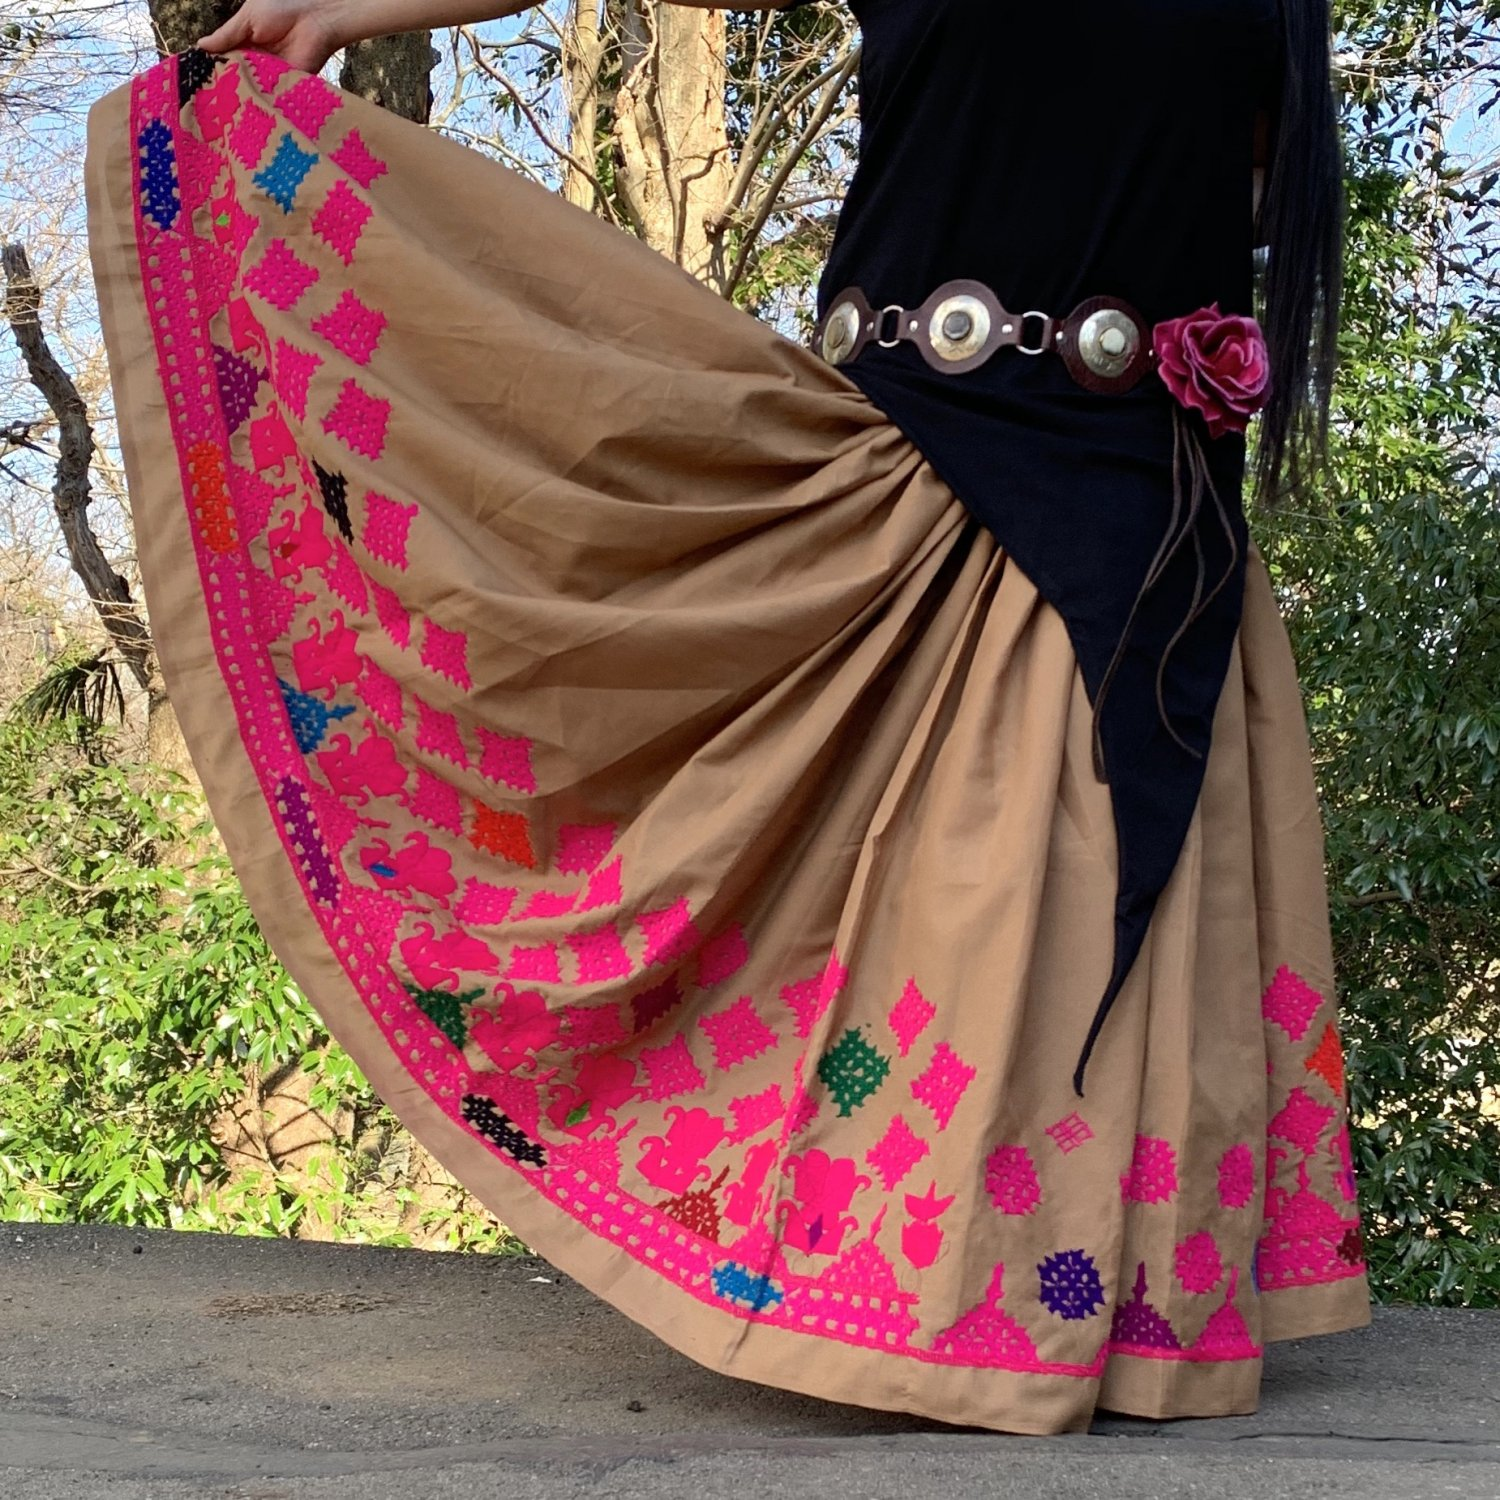 Rajasthani gypsy skirt #002* vintage * ラジャスタン刺繍スカート バンジャラ《ベージュxピンク》<img class='new_mark_img2' src='https://img.shop-pro.jp/img/new/icons20.gif' style='border:none;display:inline;margin:0px;padding:0px;width:auto;' />